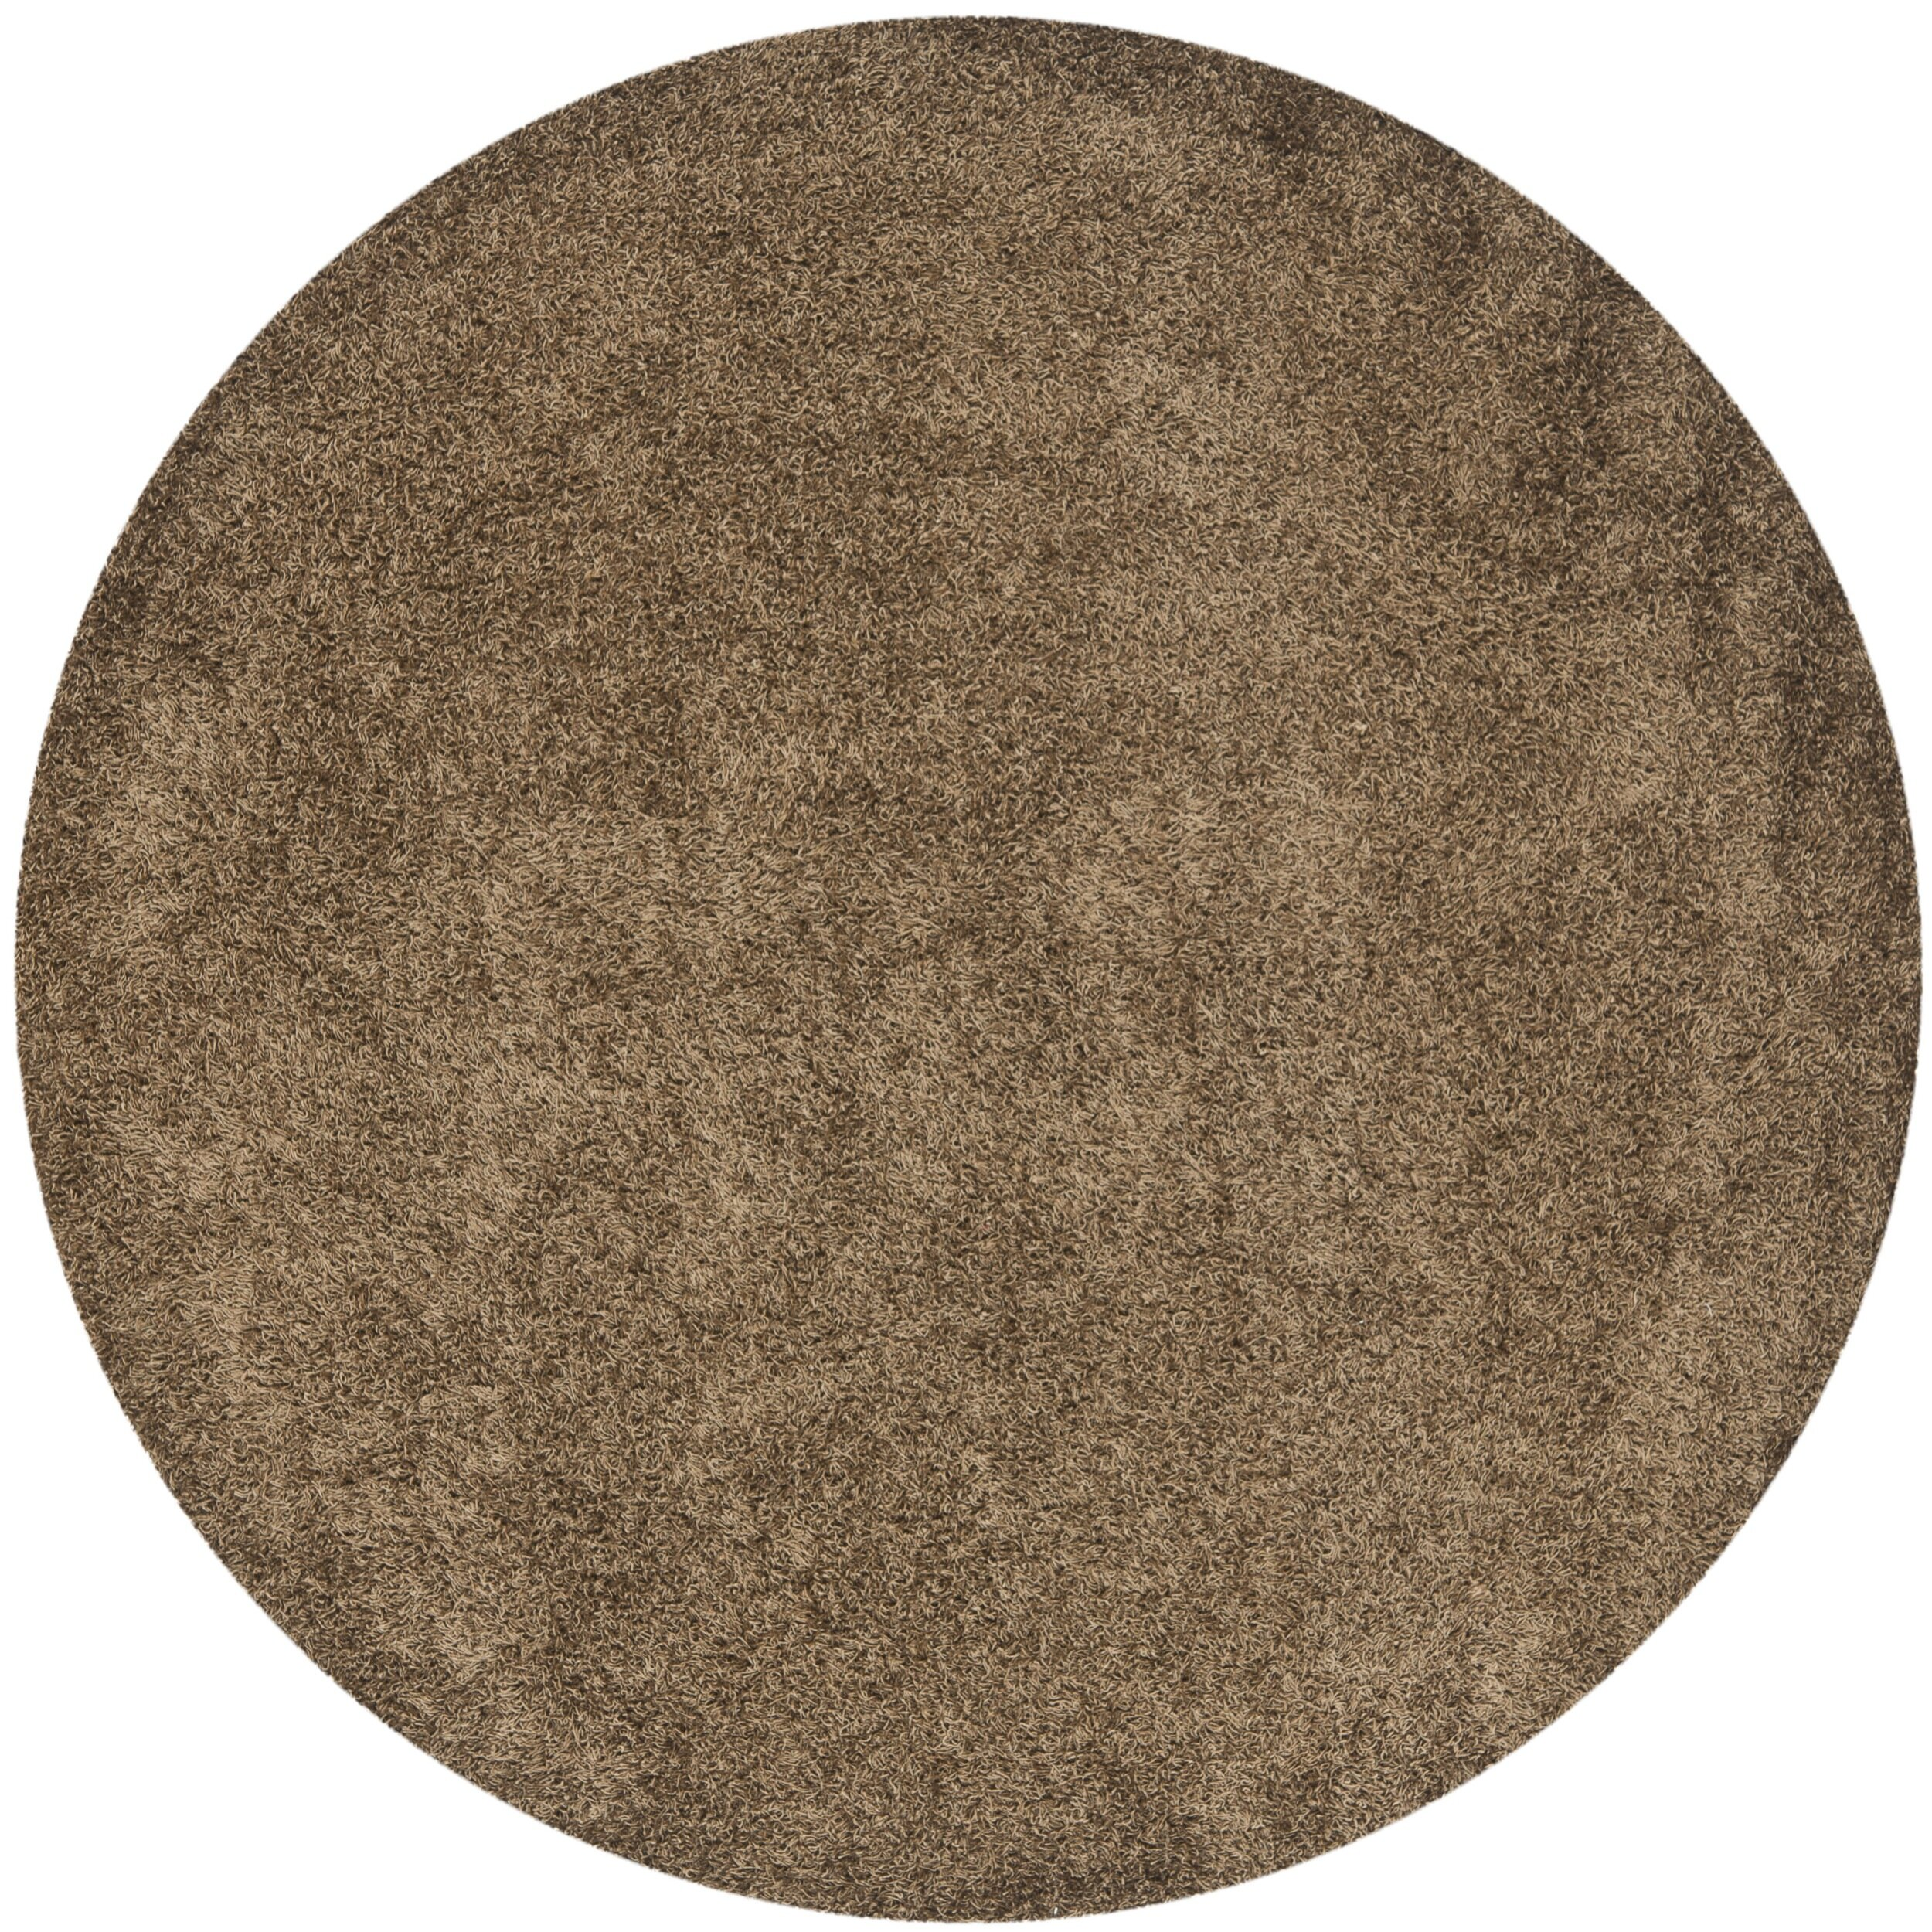 safavieh shag light brown area rug reviews wayfair. Black Bedroom Furniture Sets. Home Design Ideas